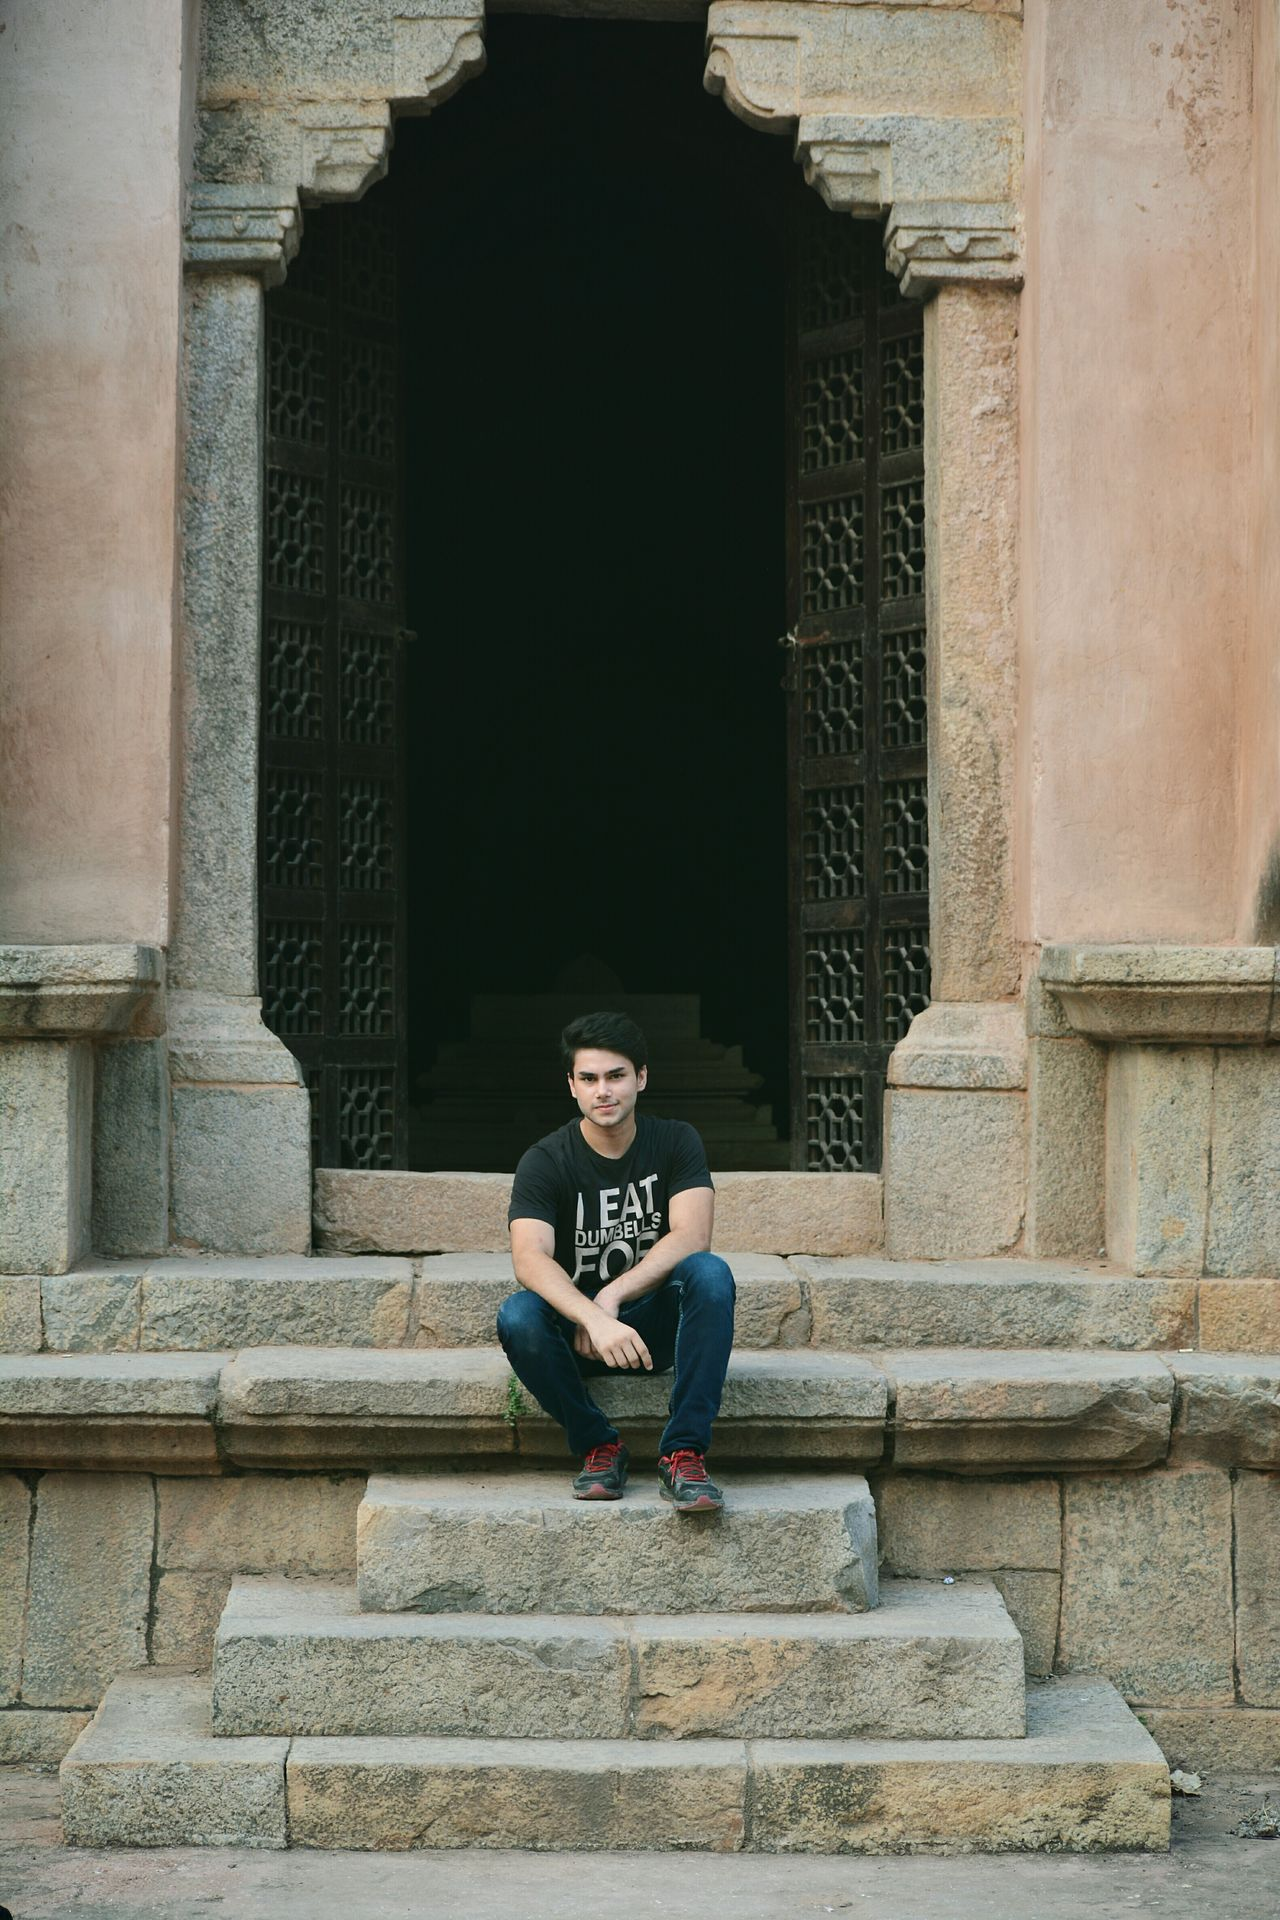 Sitting Casual Clothing Full Length Architecture Looking At Camera Person In Front Of Leisure Activity Place Of Worship History Outdoors Day Architectural Column India Indiapictures Hauzkhasfort Hauzkhasvillage Sitting Casual Clothing Building Exterior Full Length Architecture Looking At Camera Person Portrait